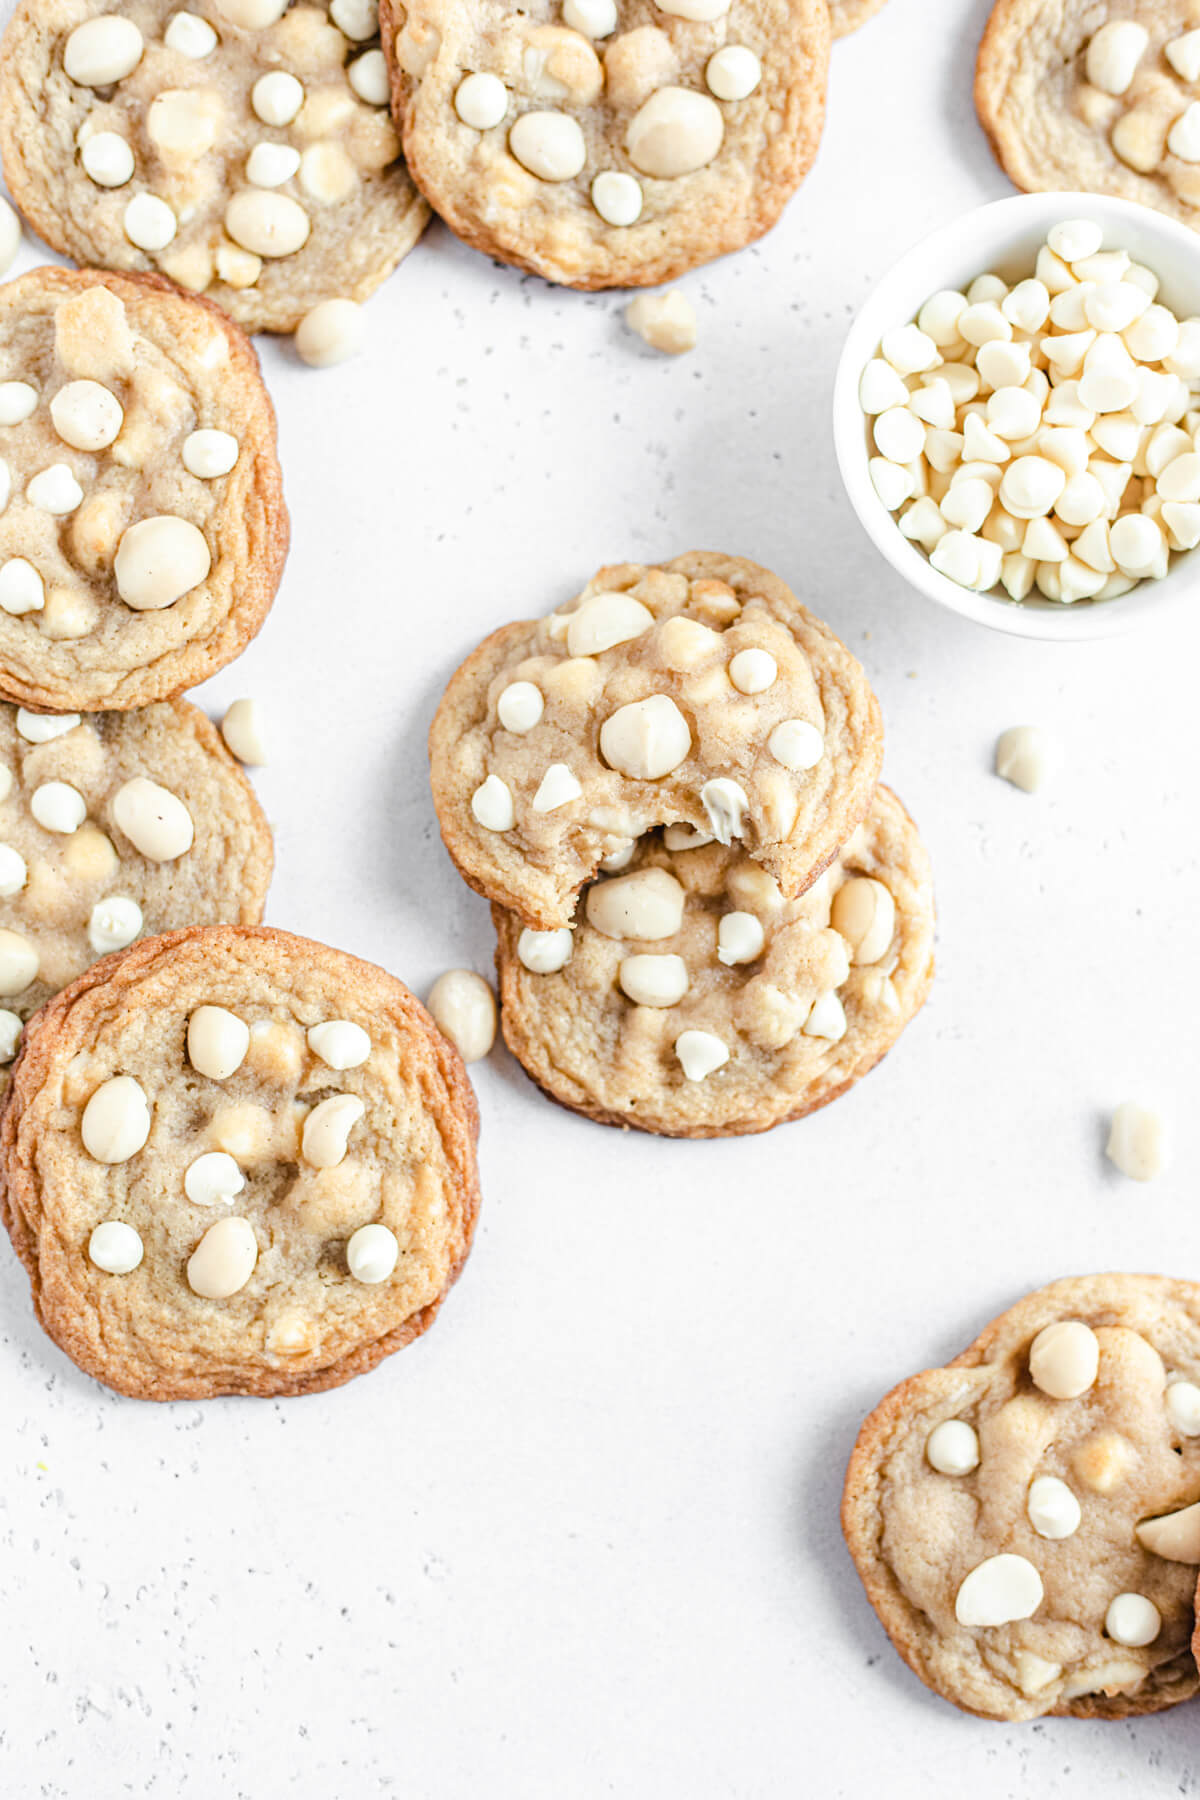 white chocolate and macadamia nut cookies with a bowl of white chocolate chips next to them